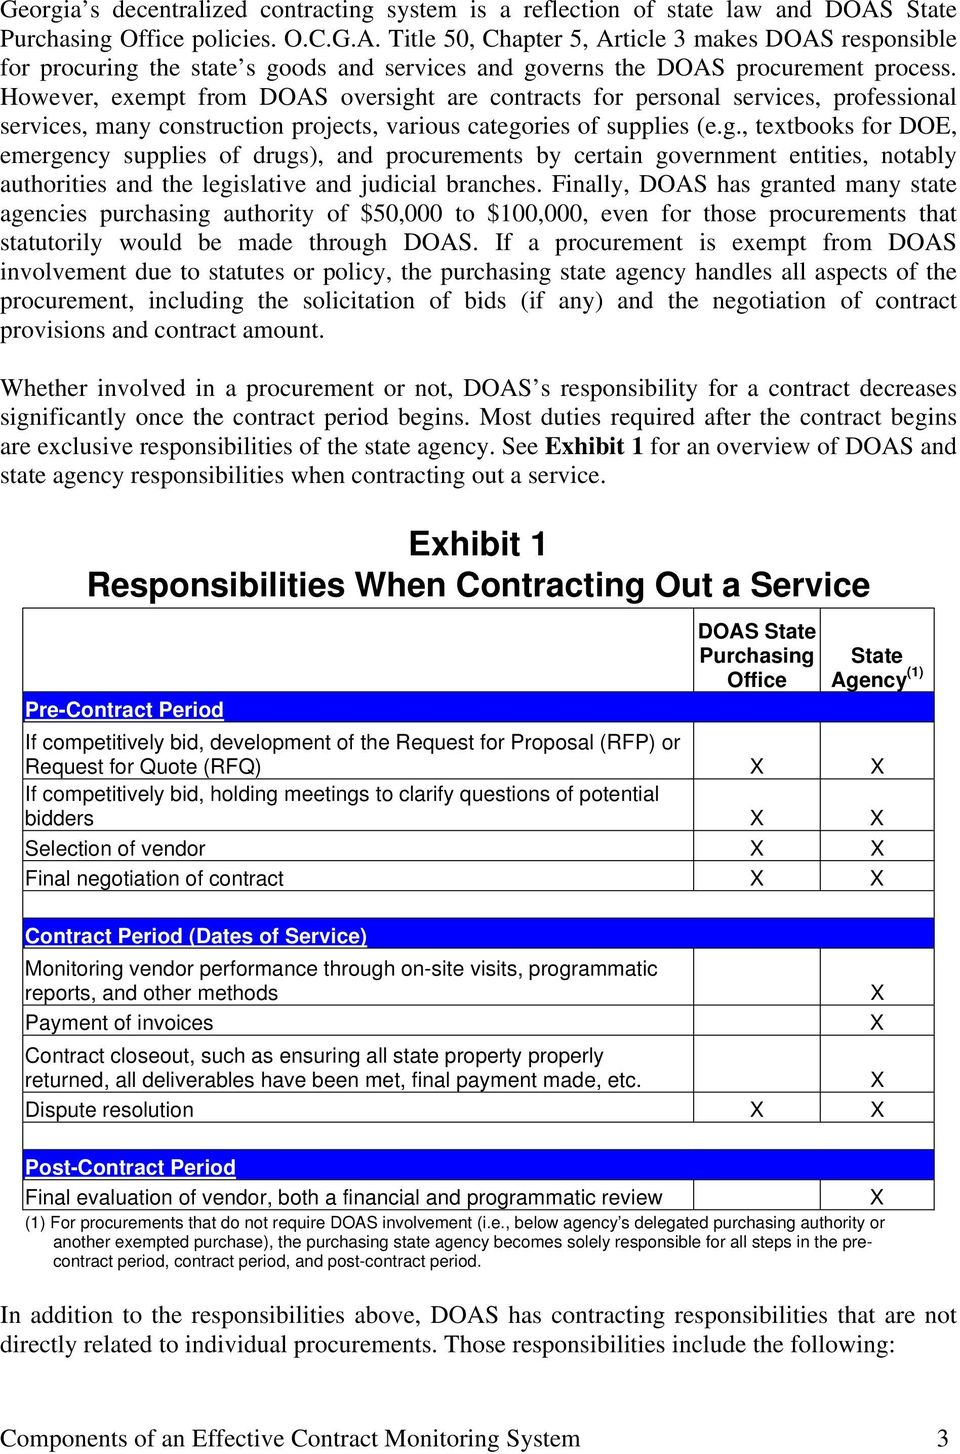 However, exempt from DOAS oversight are contracts for personal services, professional services, many construction projects, various categories of supplies (e.g., textbooks for DOE, emergency supplies of drugs), and procurements by certain government entities, notably authorities and the legislative and judicial branches.